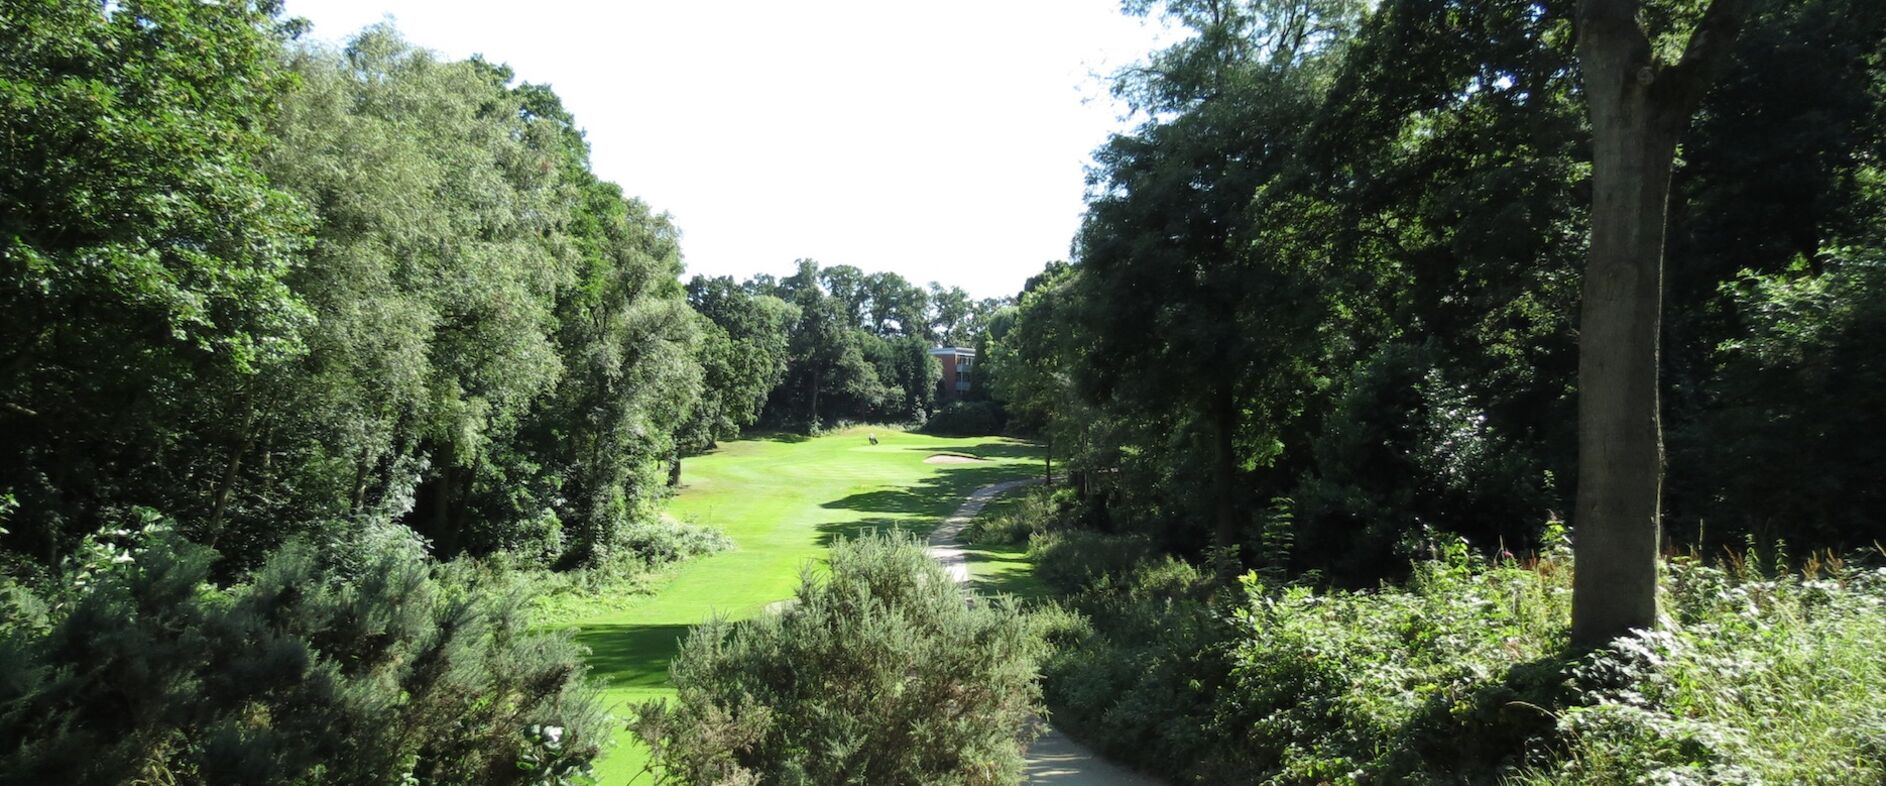 Moseley GC in the heart of the City of Birmingham